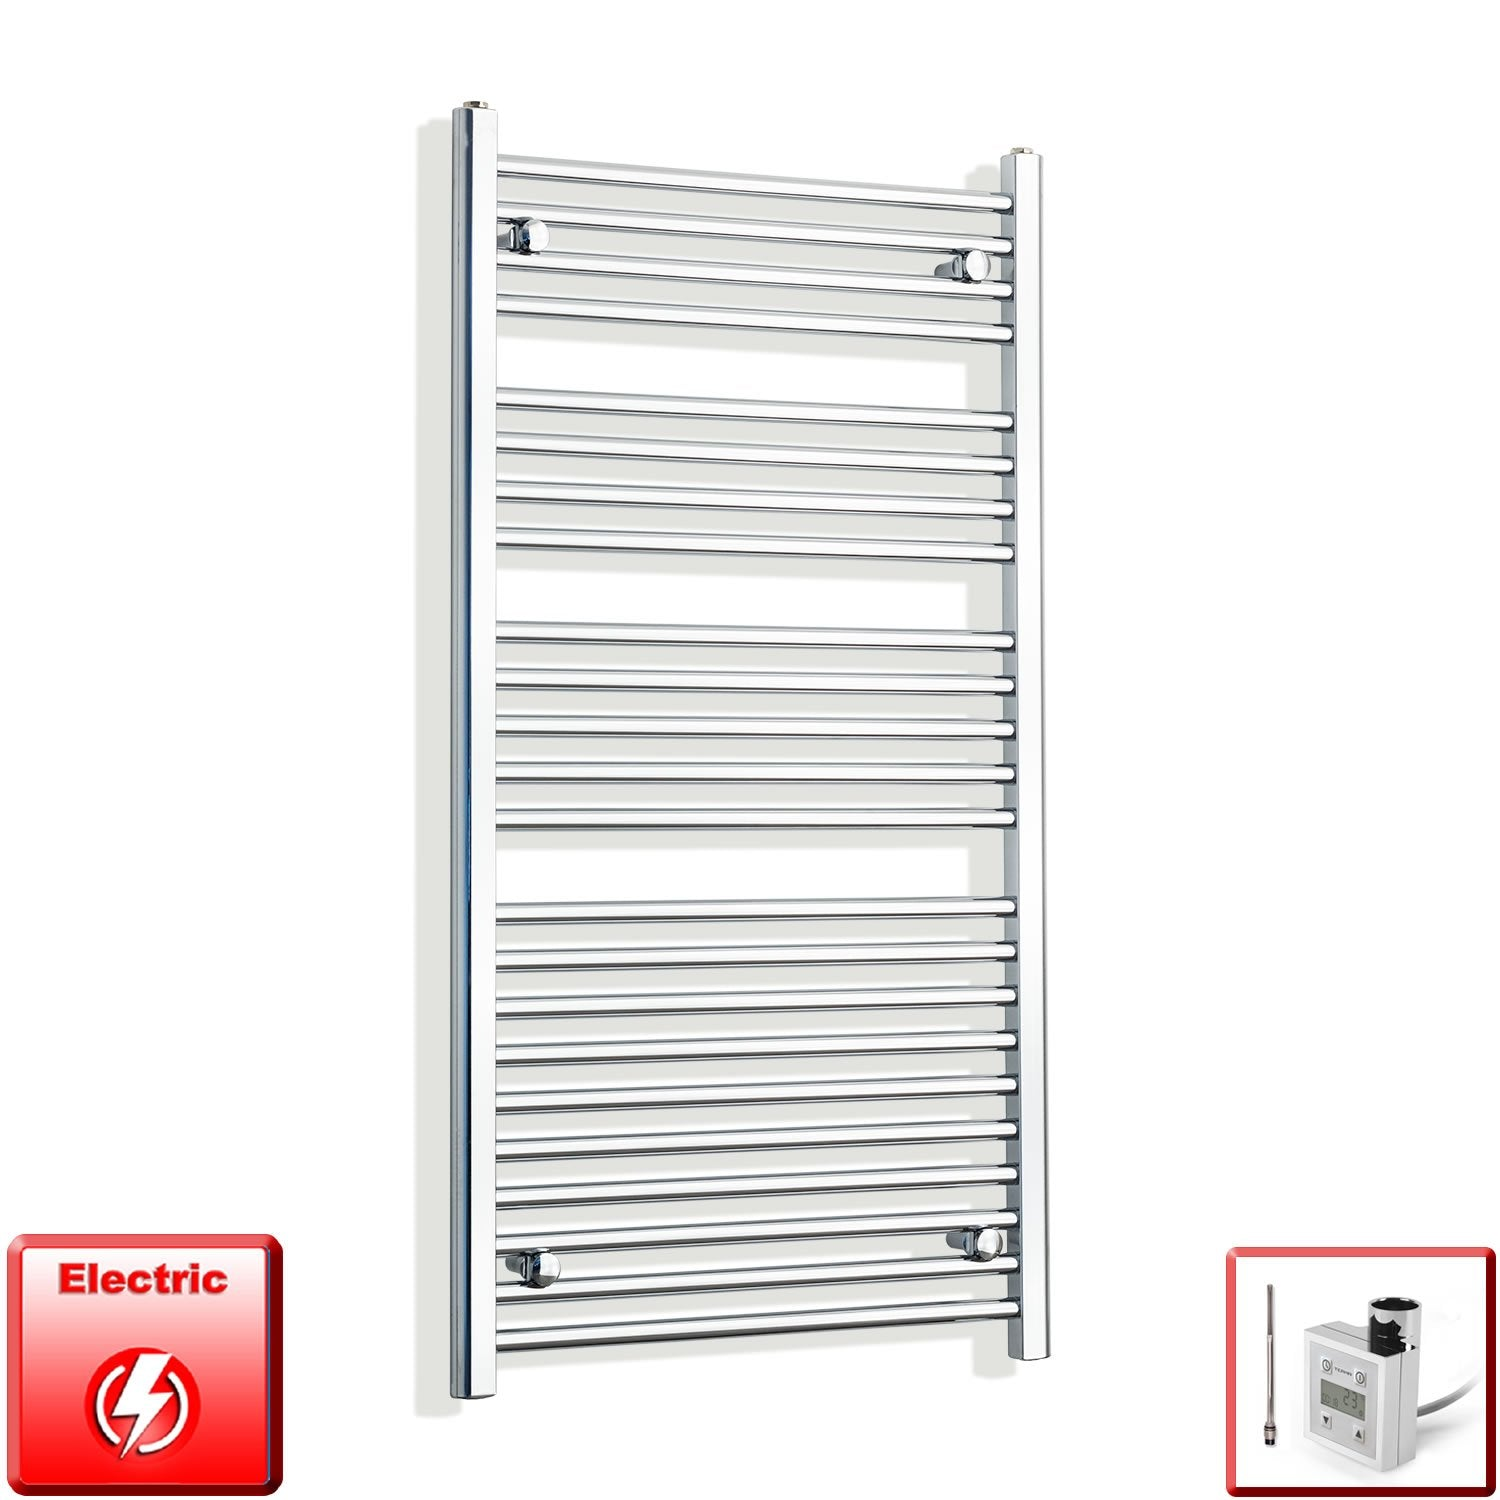 650mm Wide 1200mm High Flat Chrome Pre-Filled Electric Heated Towel Rail Radiator HTR,KTX-3 Thermostatic Element